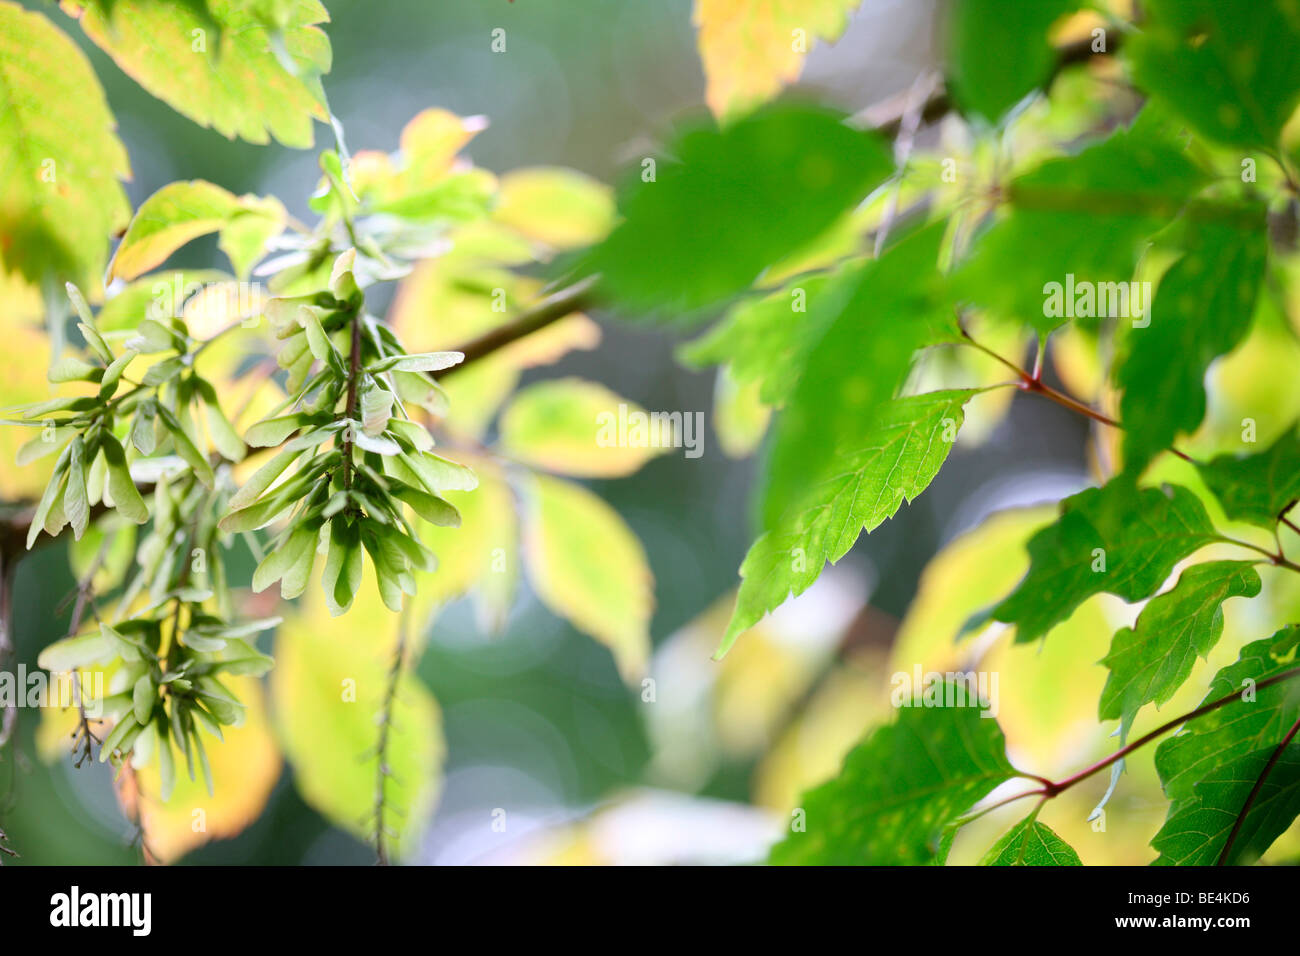 Vine Leaved Maple Acer Cissifolium Summer to Autumn Season Change - fine art photography Jane-Ann Butler Photography - Stock Image